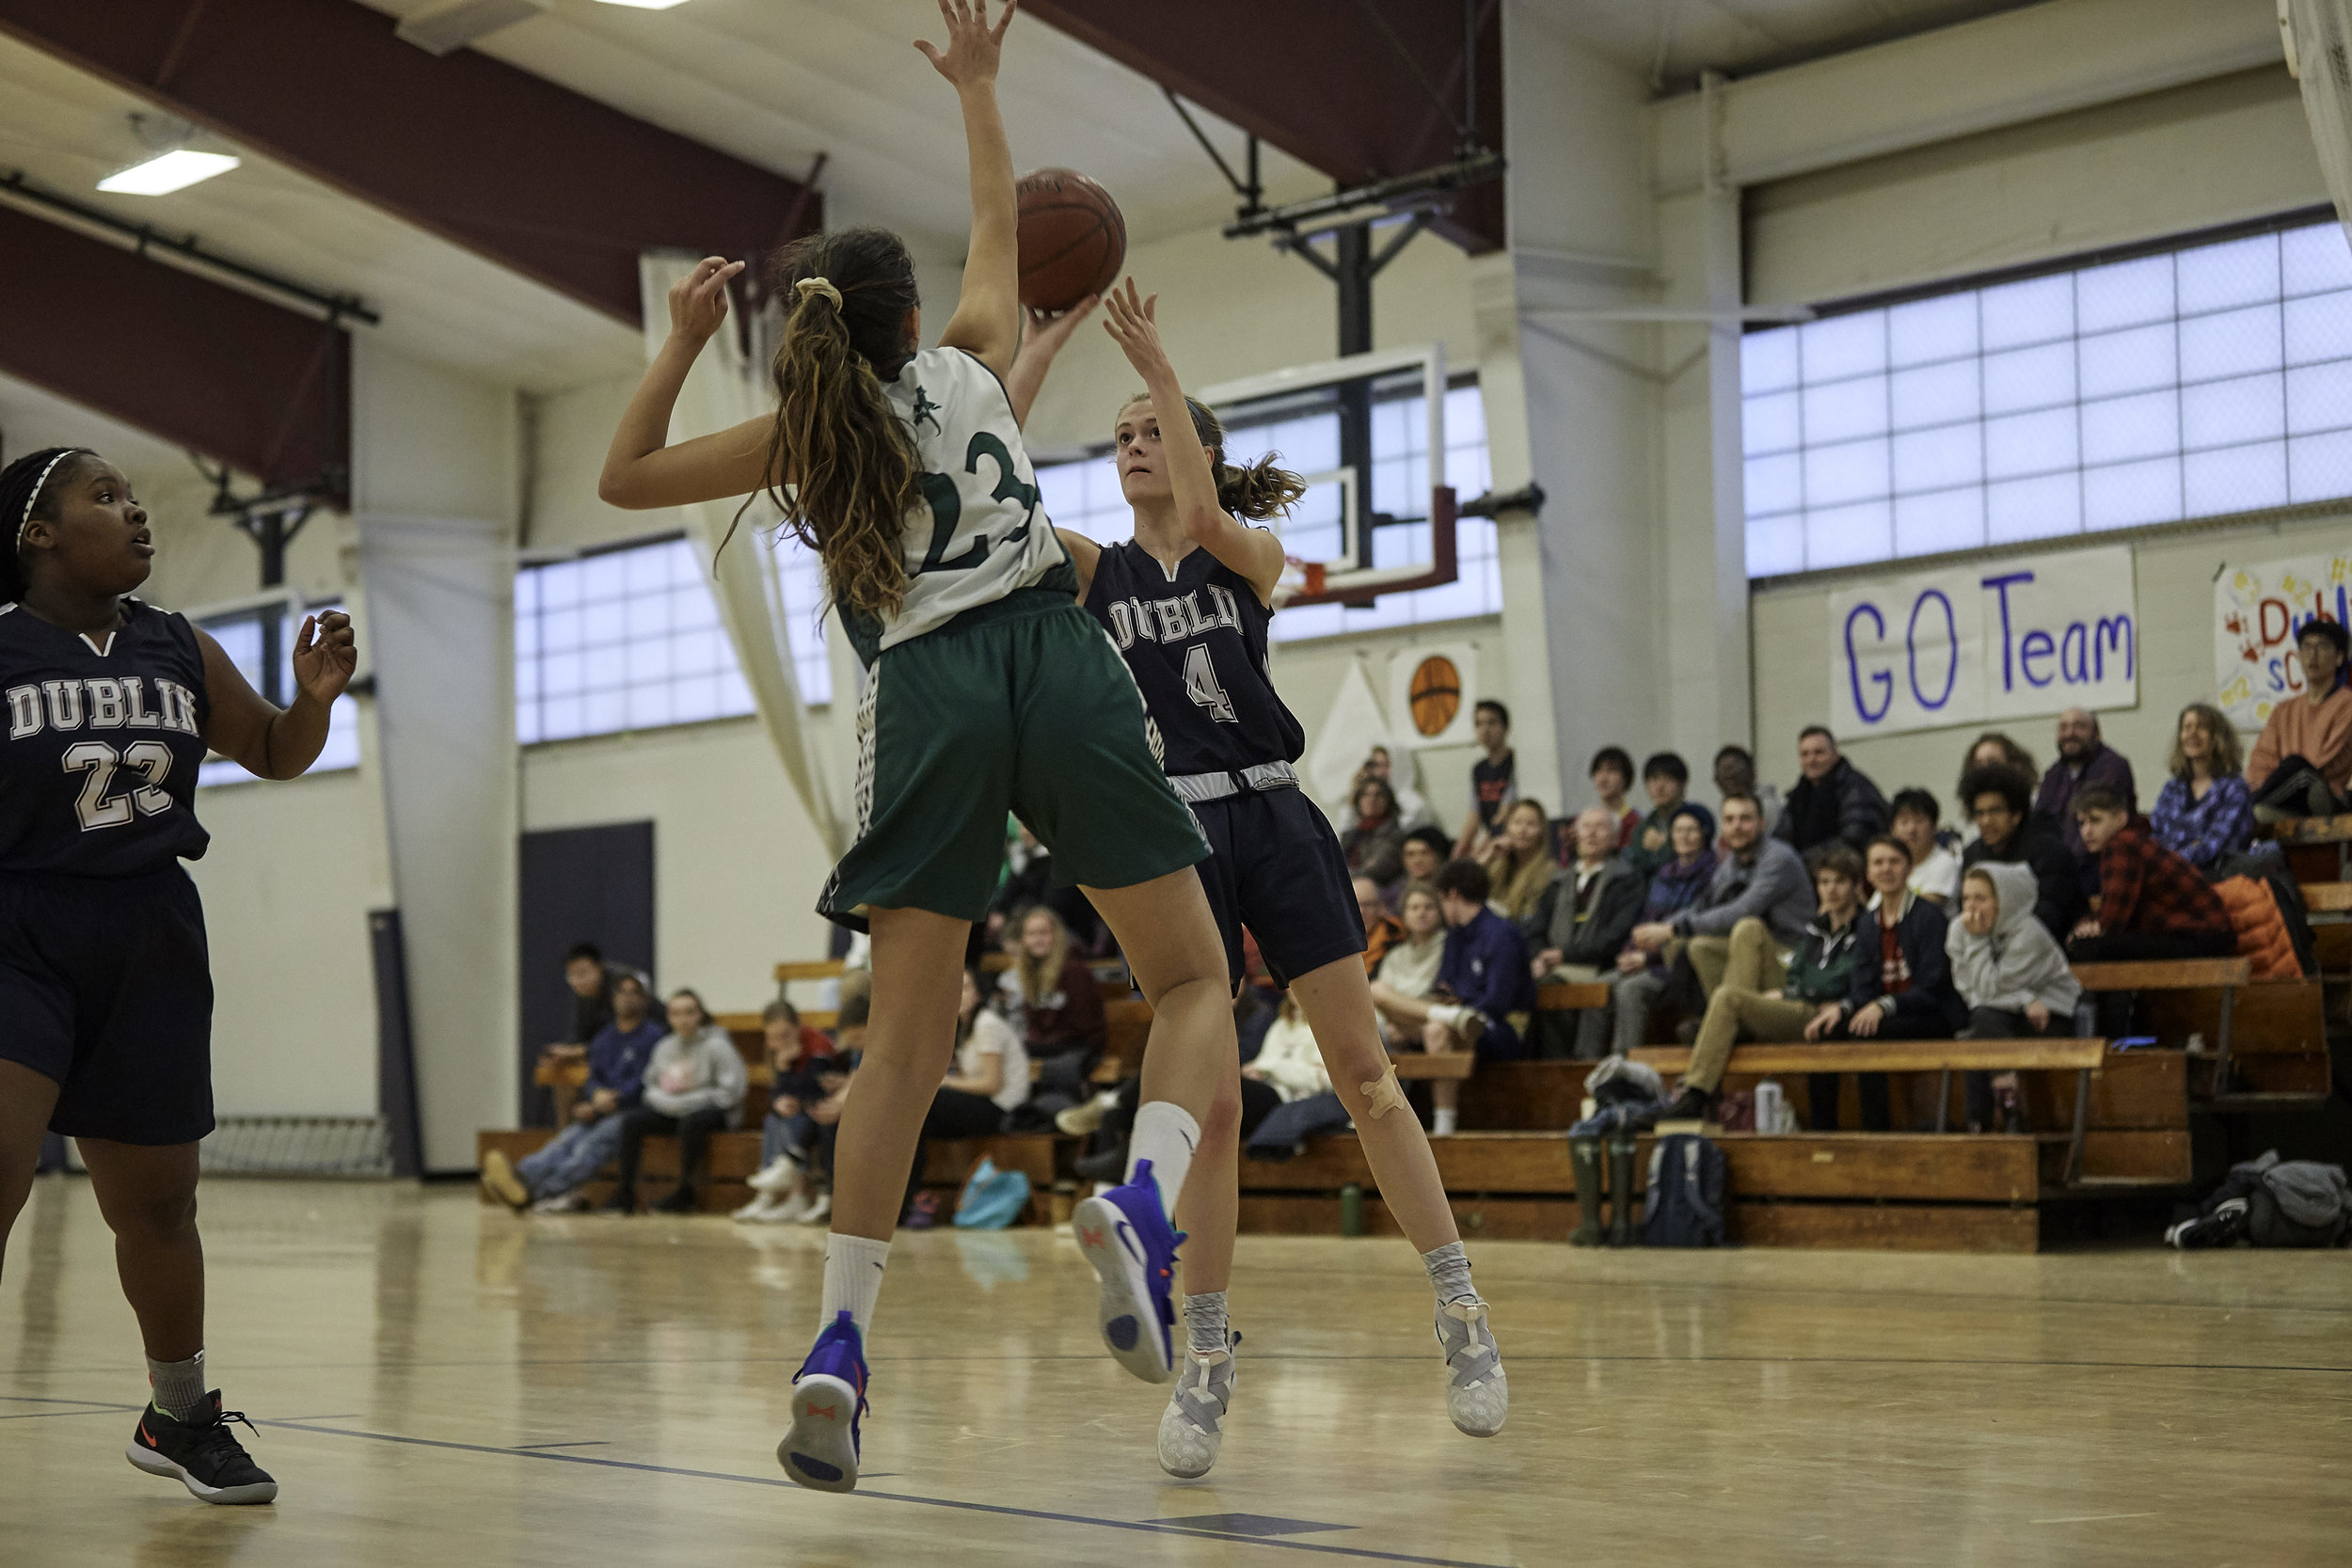 Basketball vs Putney School, February 9, 2019 - 167301.jpg